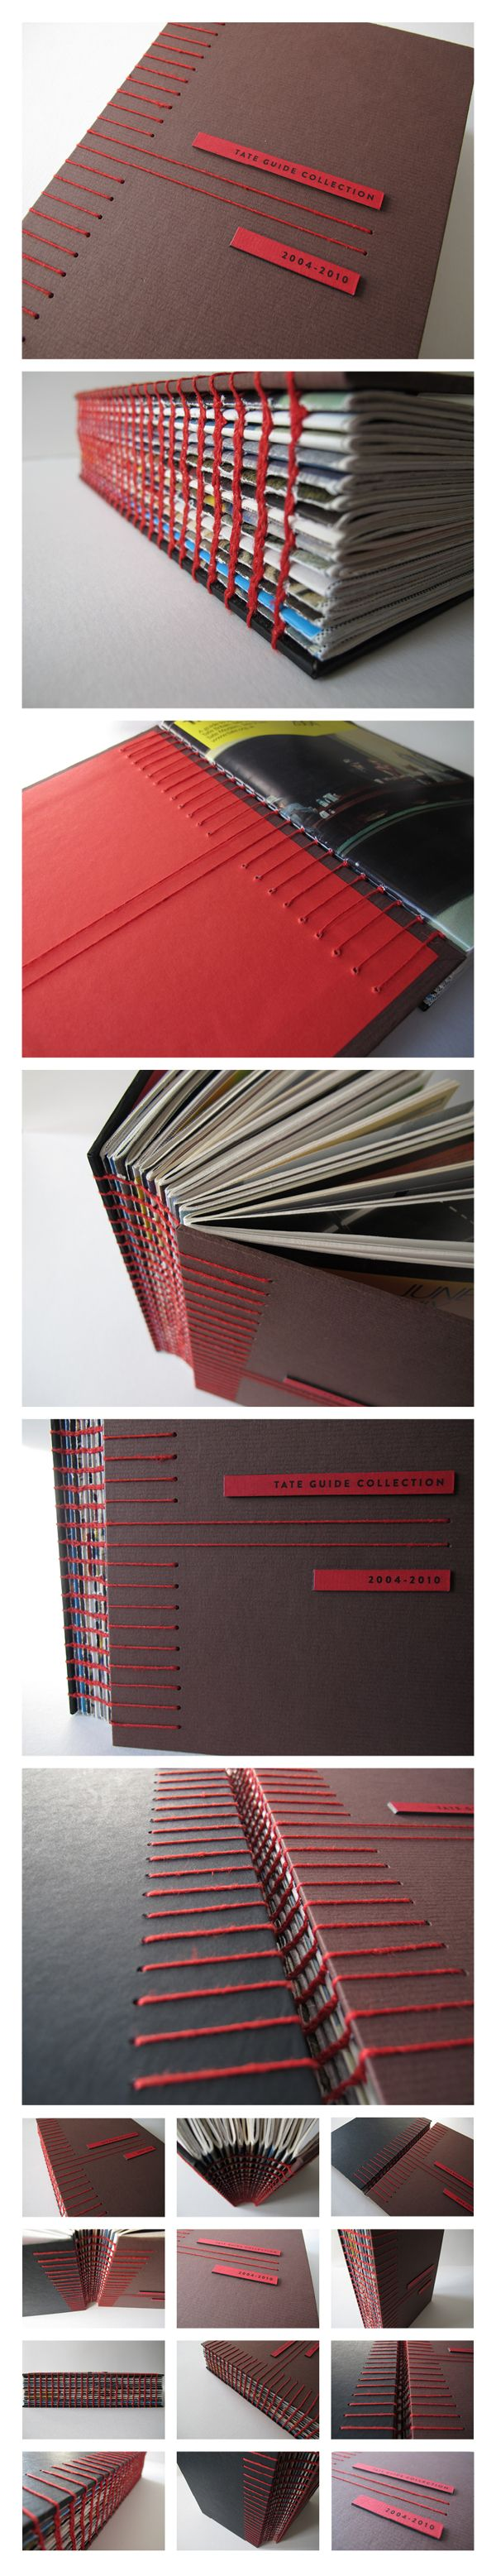 Tate Guide Collection - lovely coptic stitch book with red stitching…